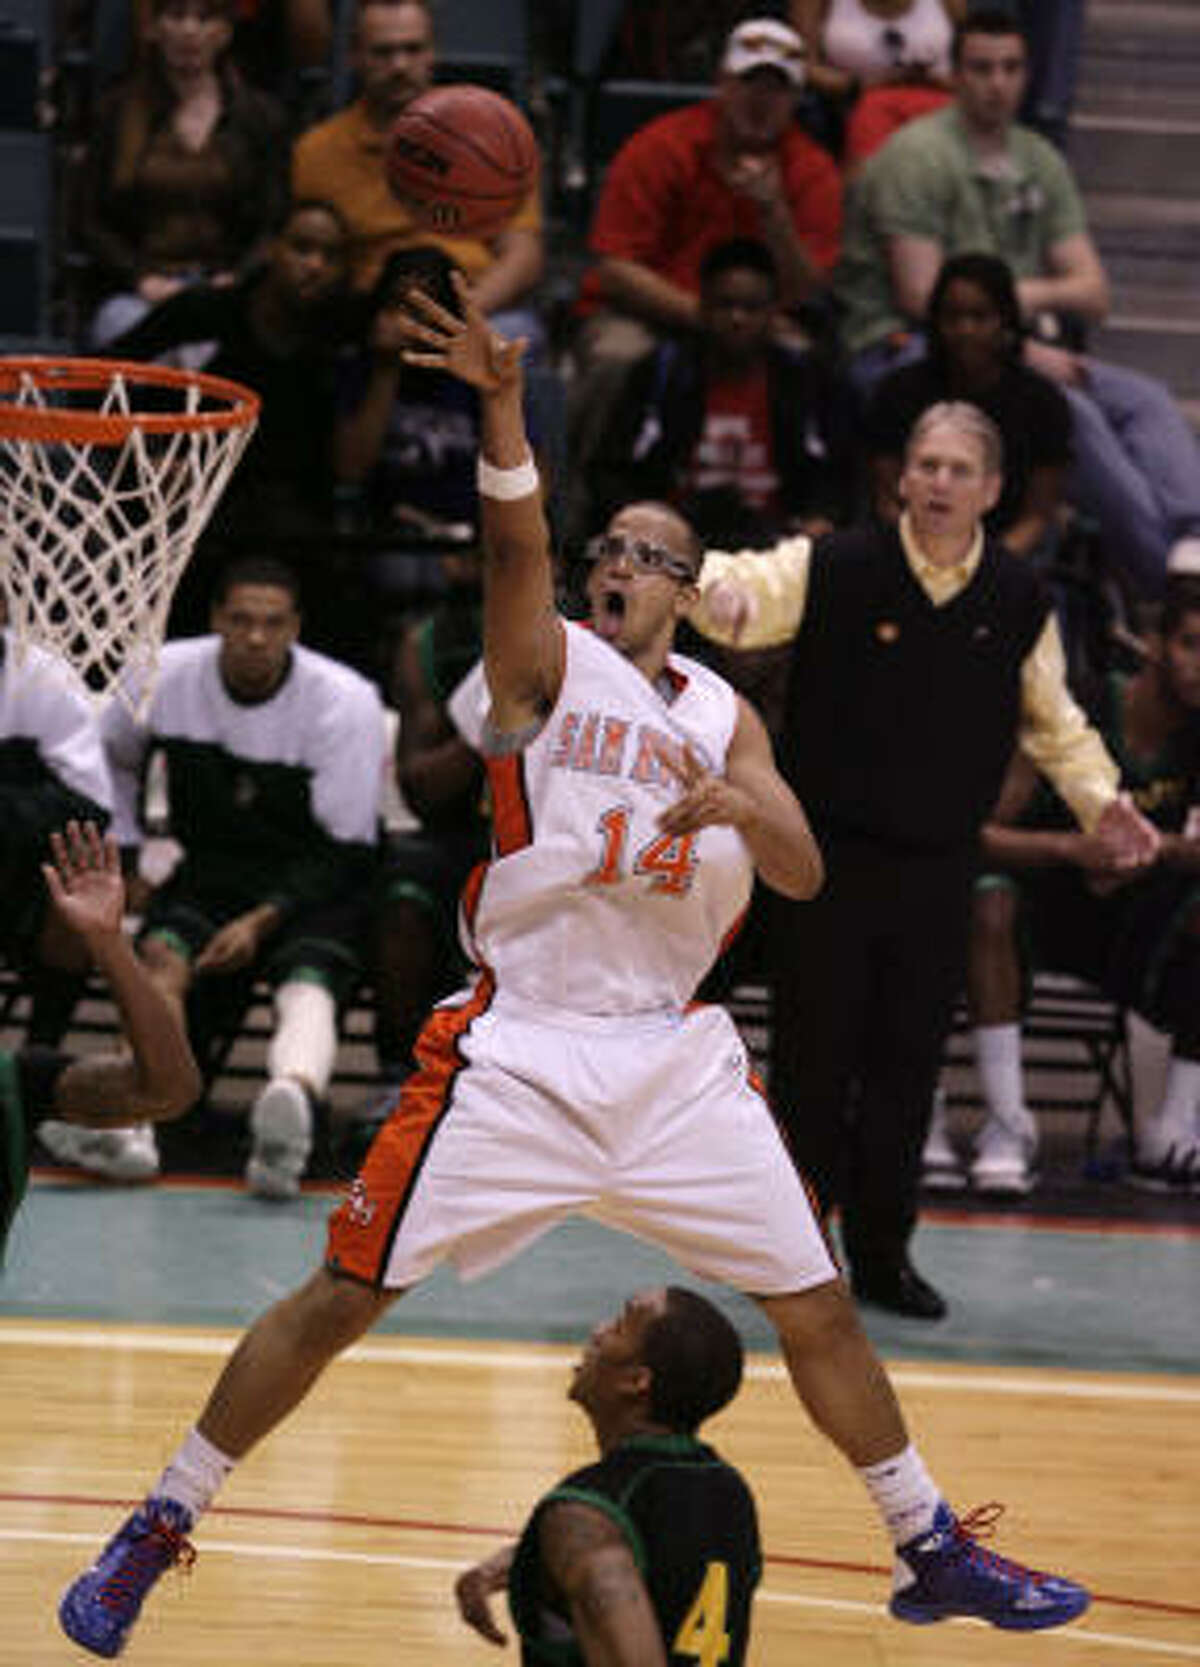 Sam Houston State forward Gilberto Clavell takes an open jumper during the first half.